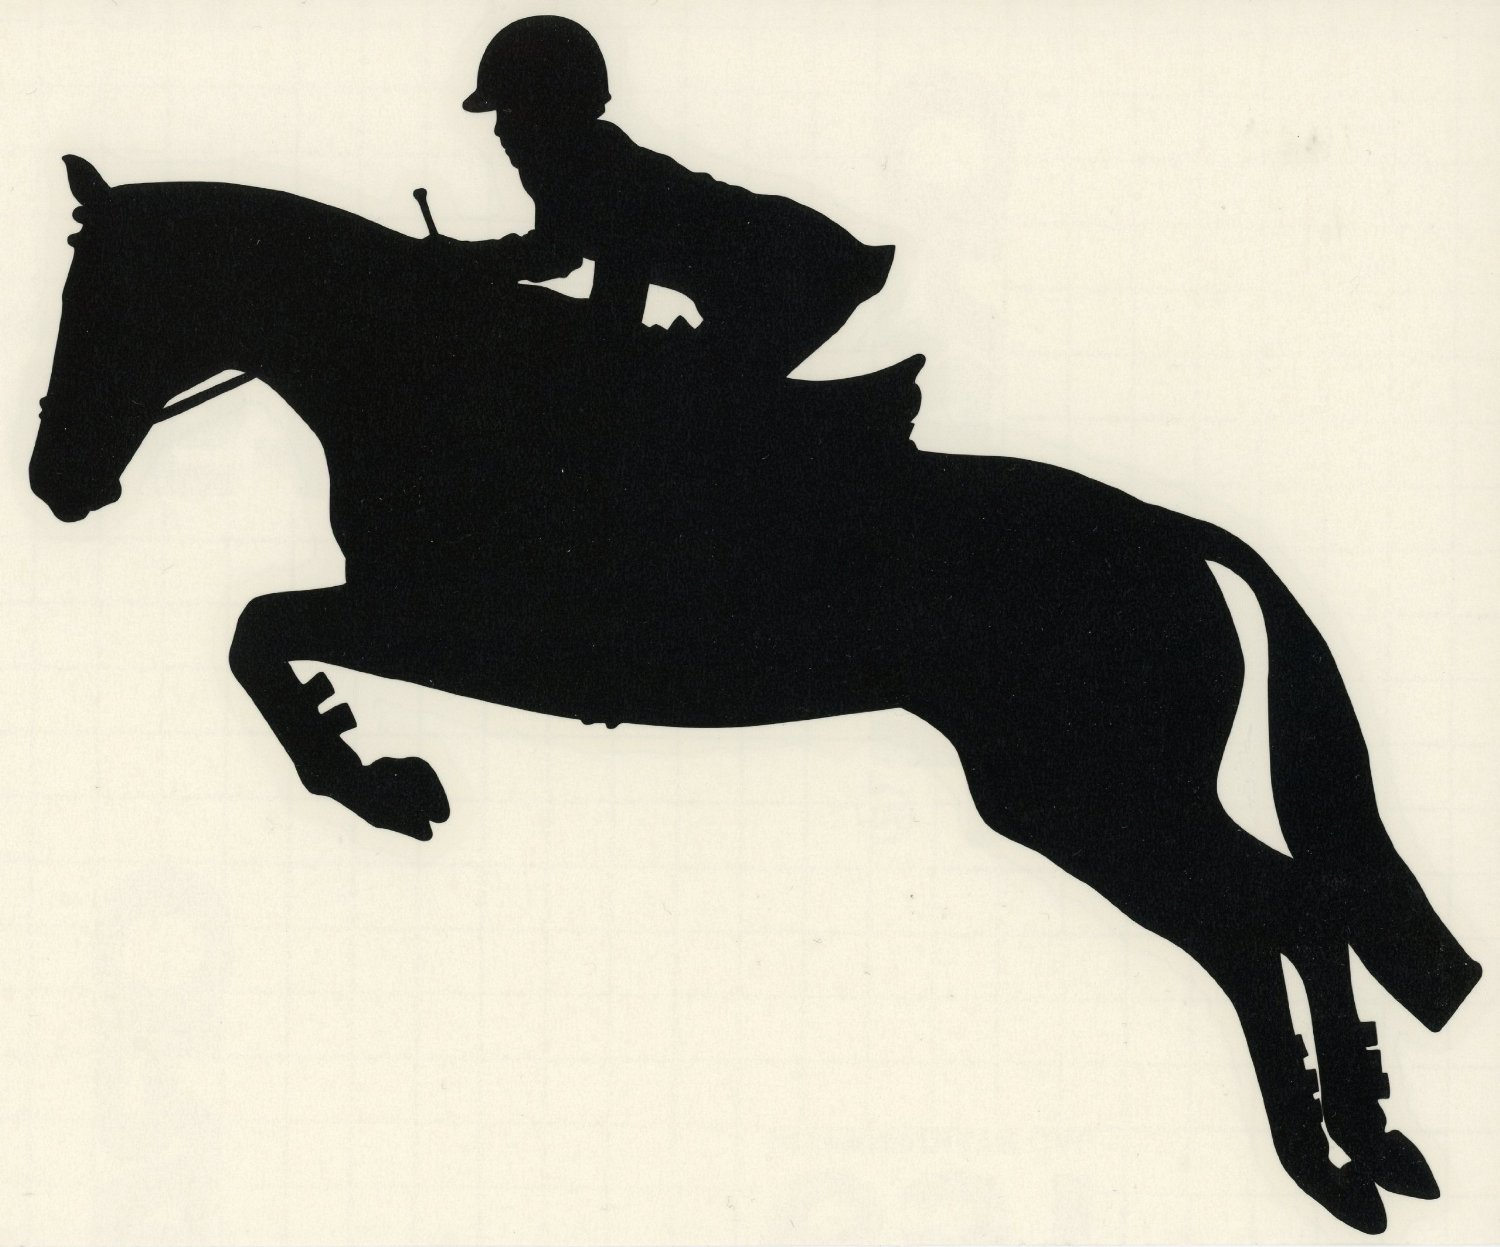 Amazon.com: English Equestrian Hunter Jumper Horse Decal-Small ...